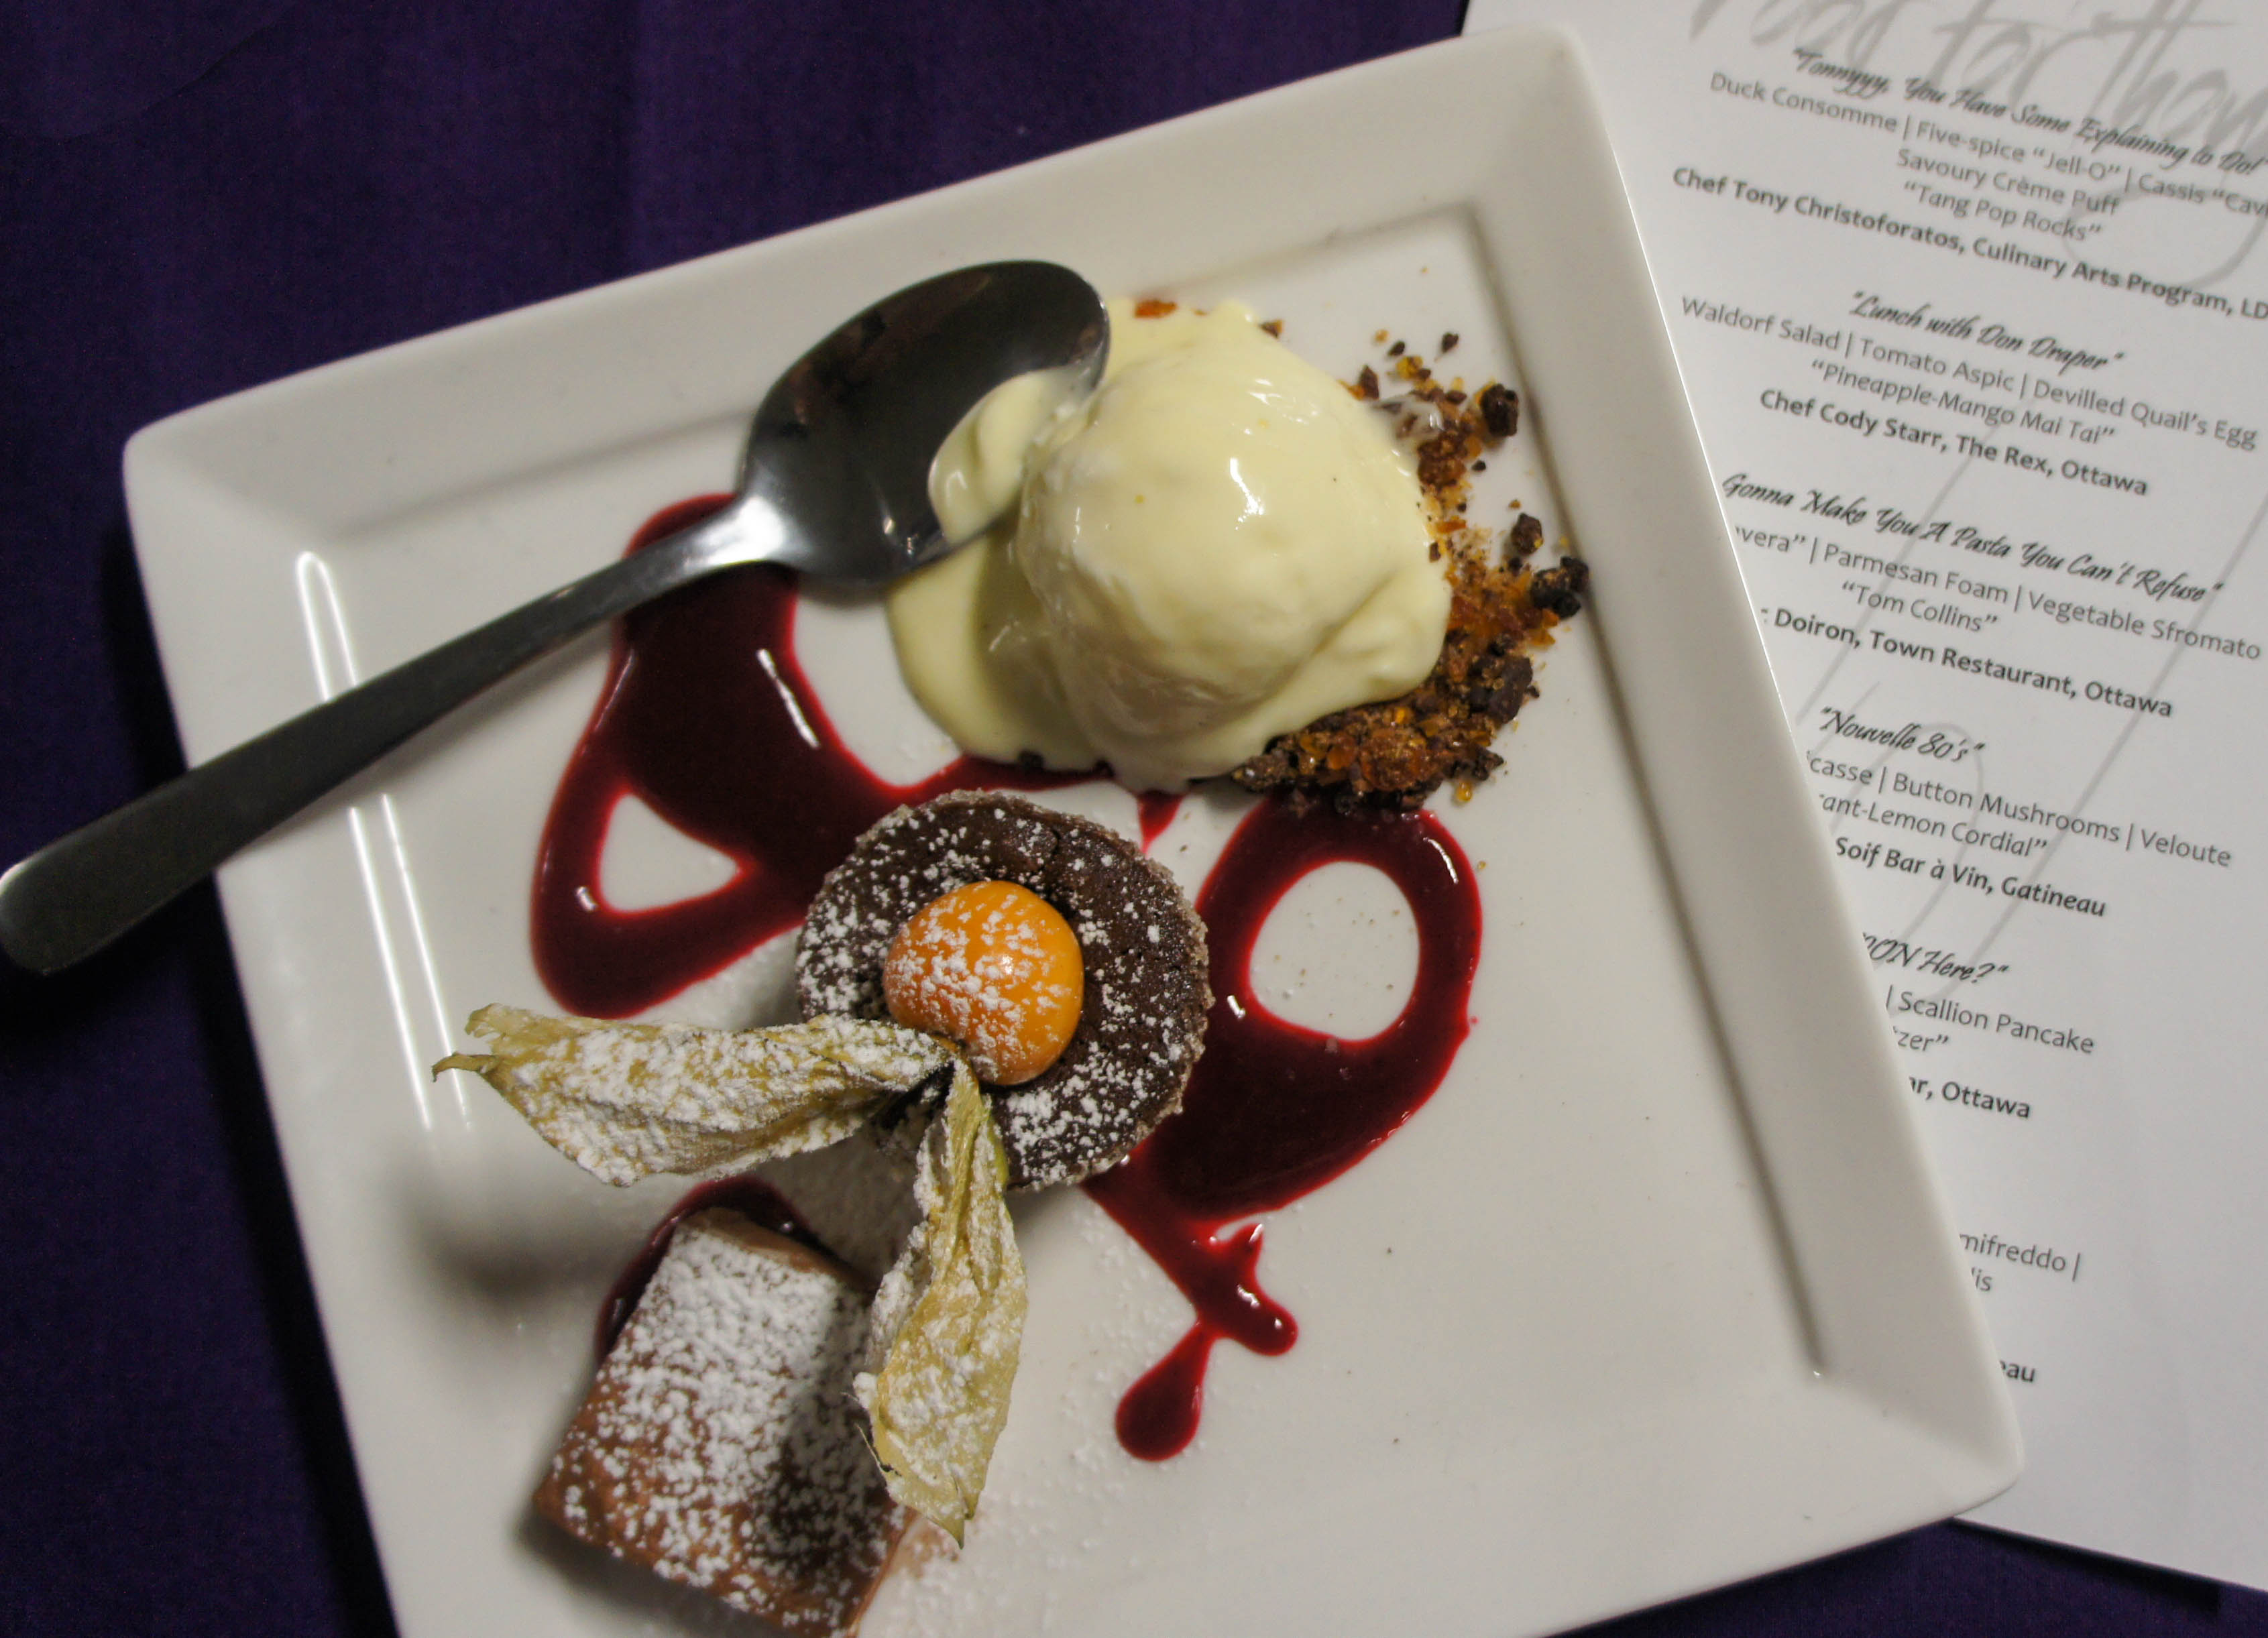 Chef Anna March revisited the 2000s with a death-by-chocolate molten lava cake. Photo by Katie Shapiro, Ottawa Magazine.